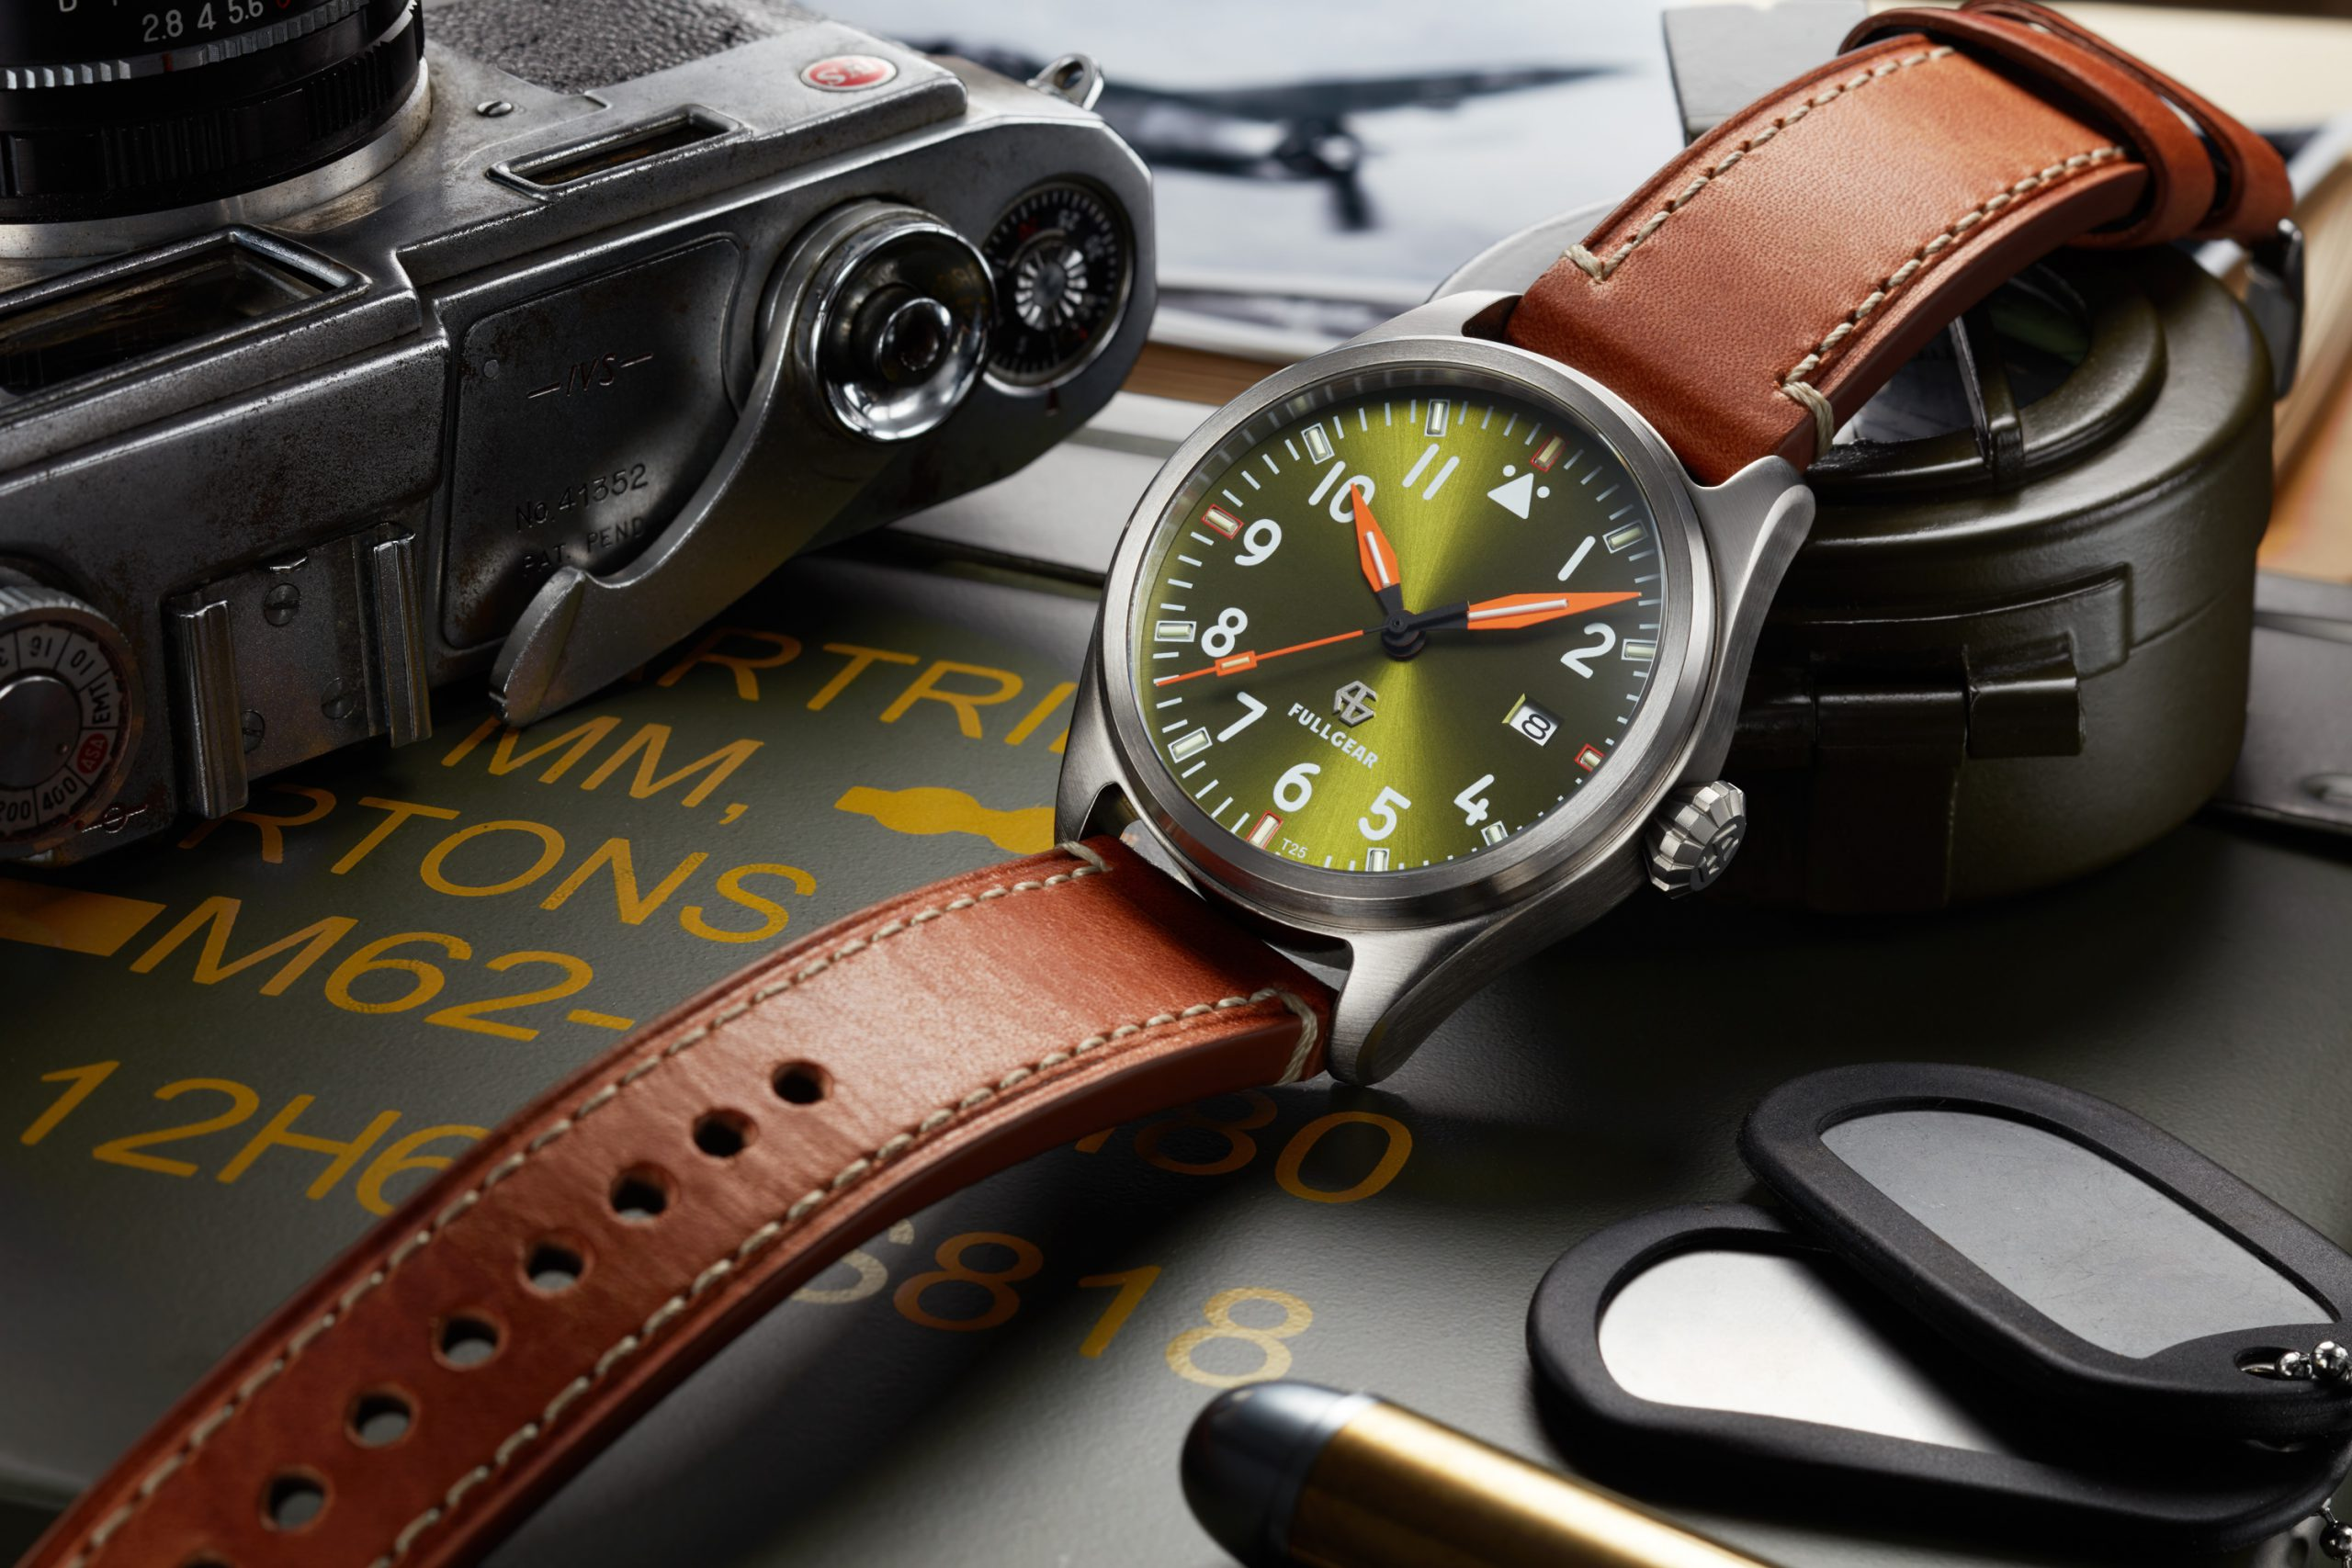 MICRO MONDAYS: The FullGear Pioneer – a customisable pilot watch featuring tritium tubes, launching this week